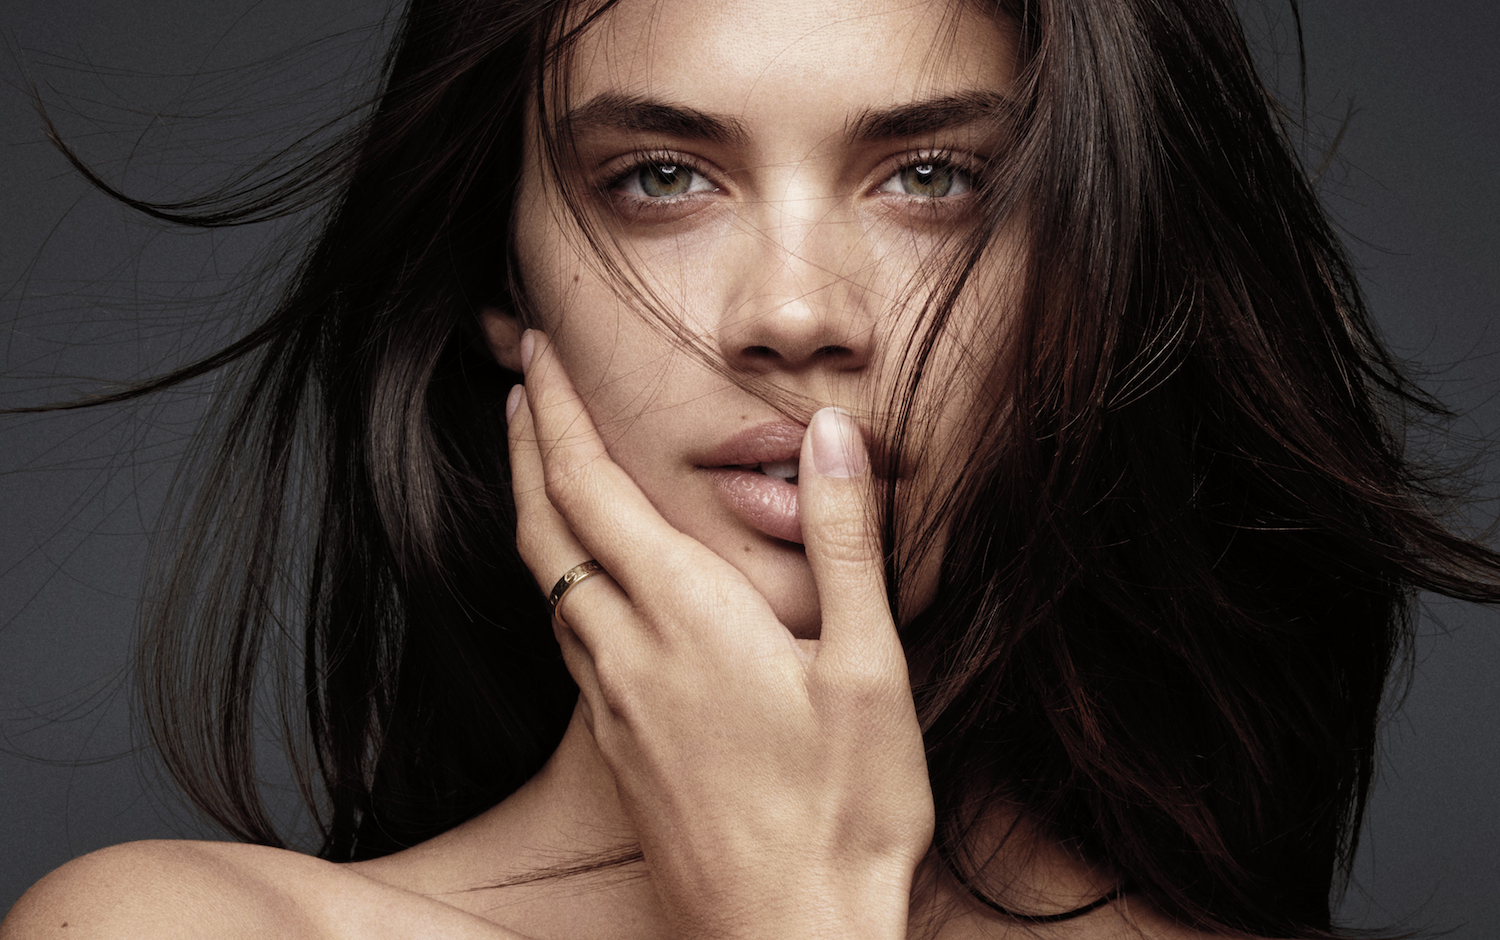 Sara Sampaio - Sarah Silver photoshoot